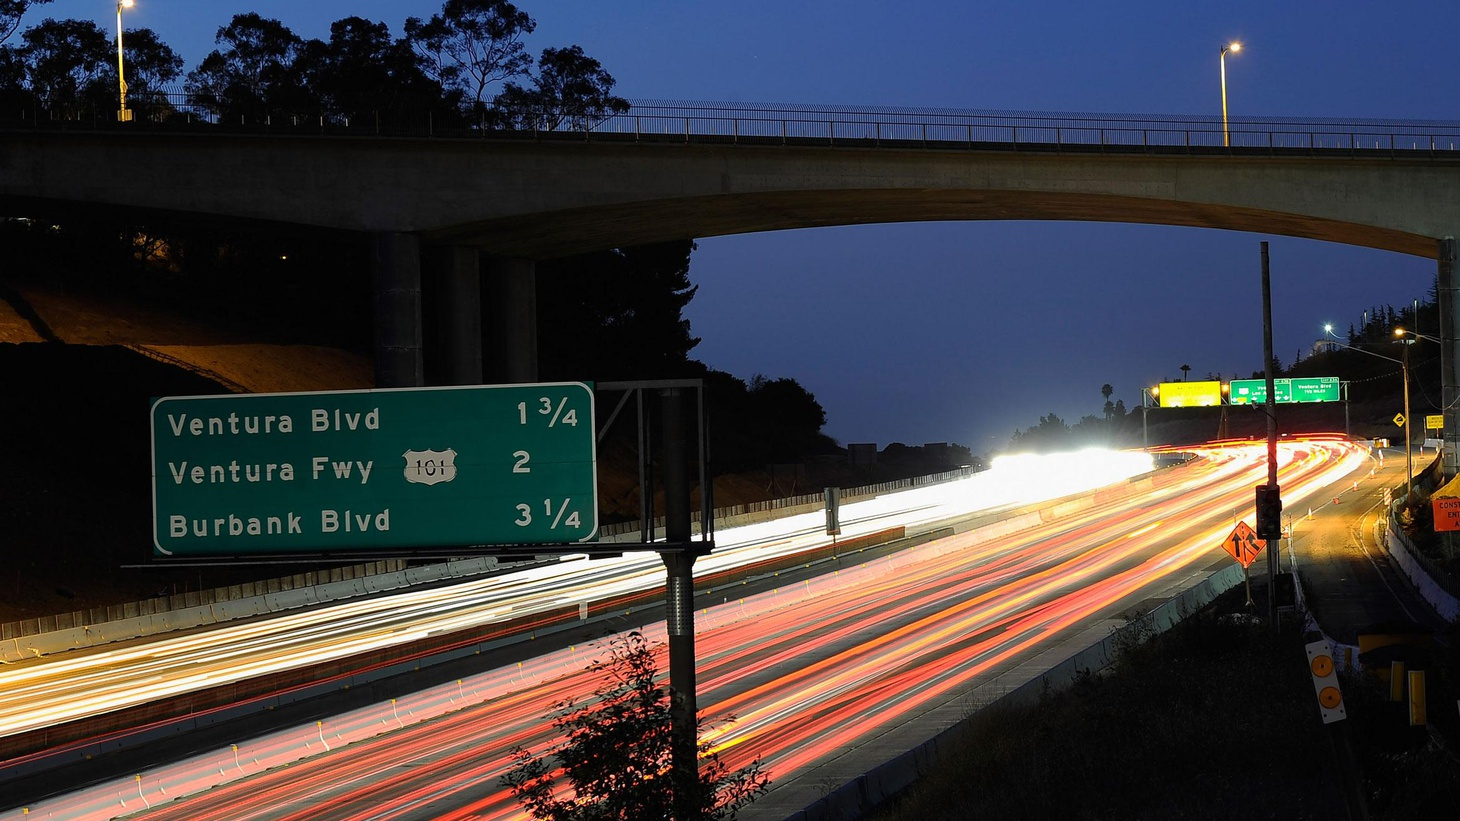 Los Angeles is officially panicked over the weekend-long shut down of a major freeway. The objective is to provide a new high-occupancy vehicle lane....